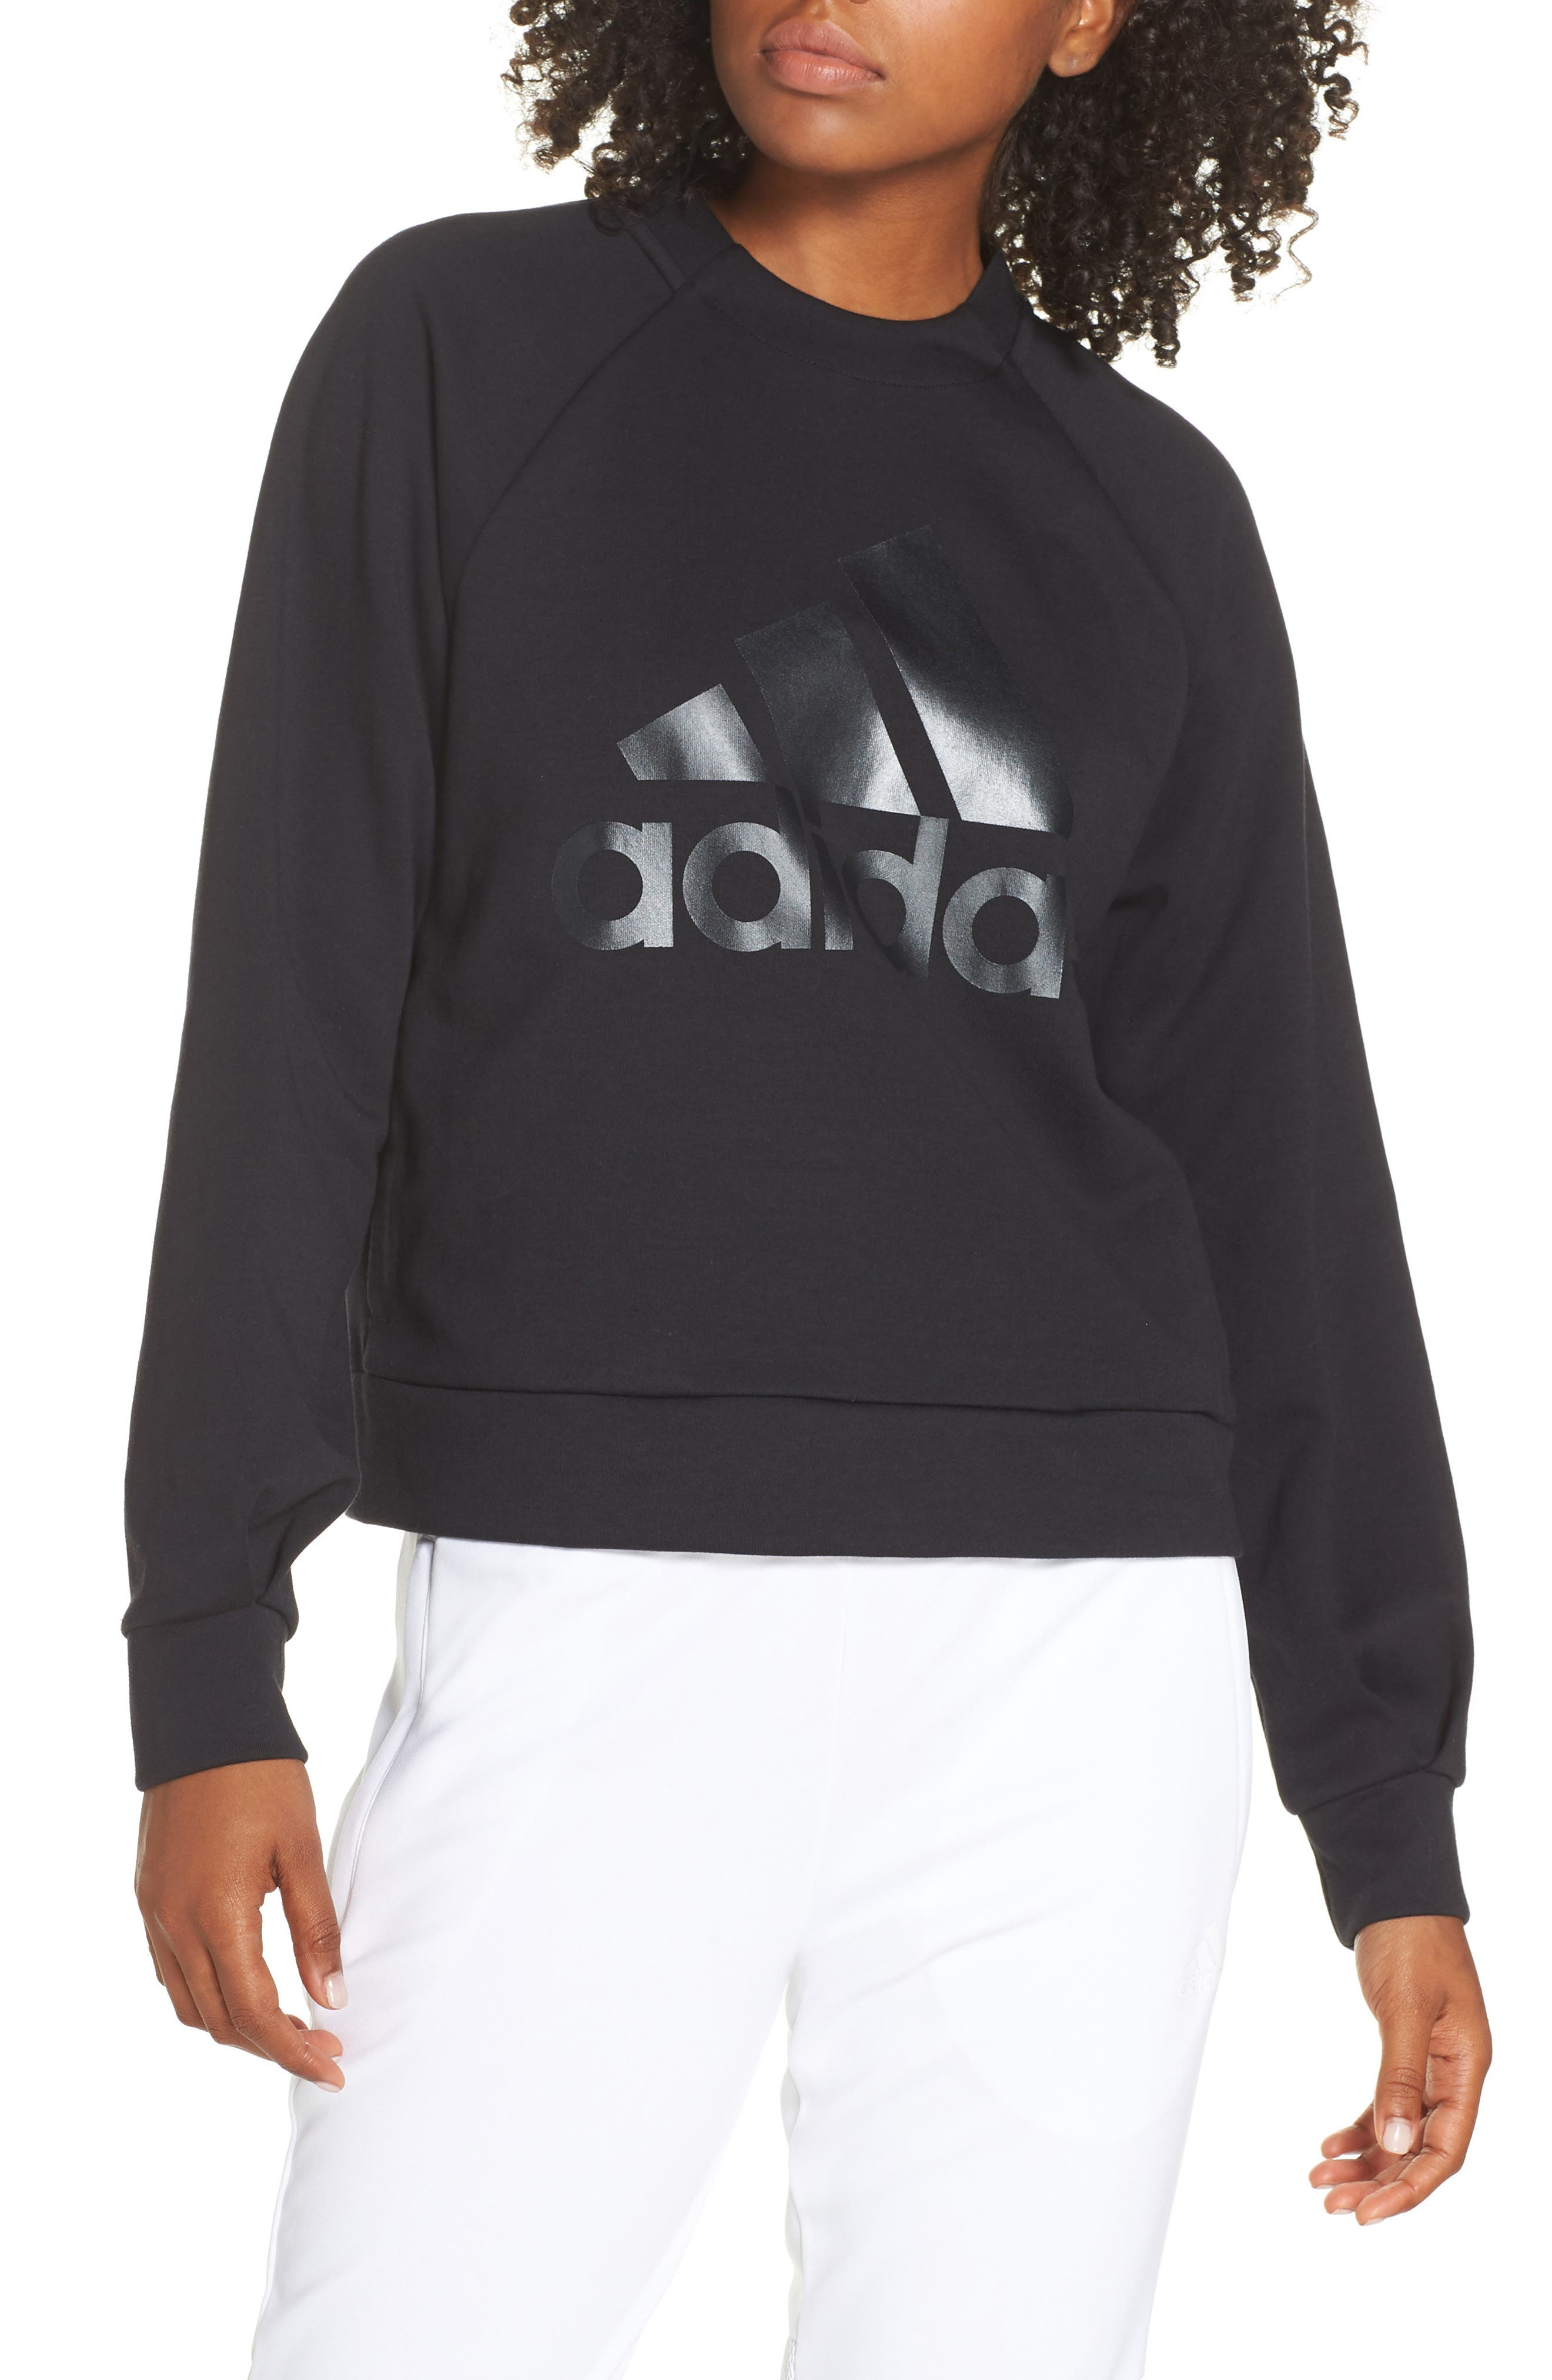 384f002ccc07 adidas for Women  Clothing